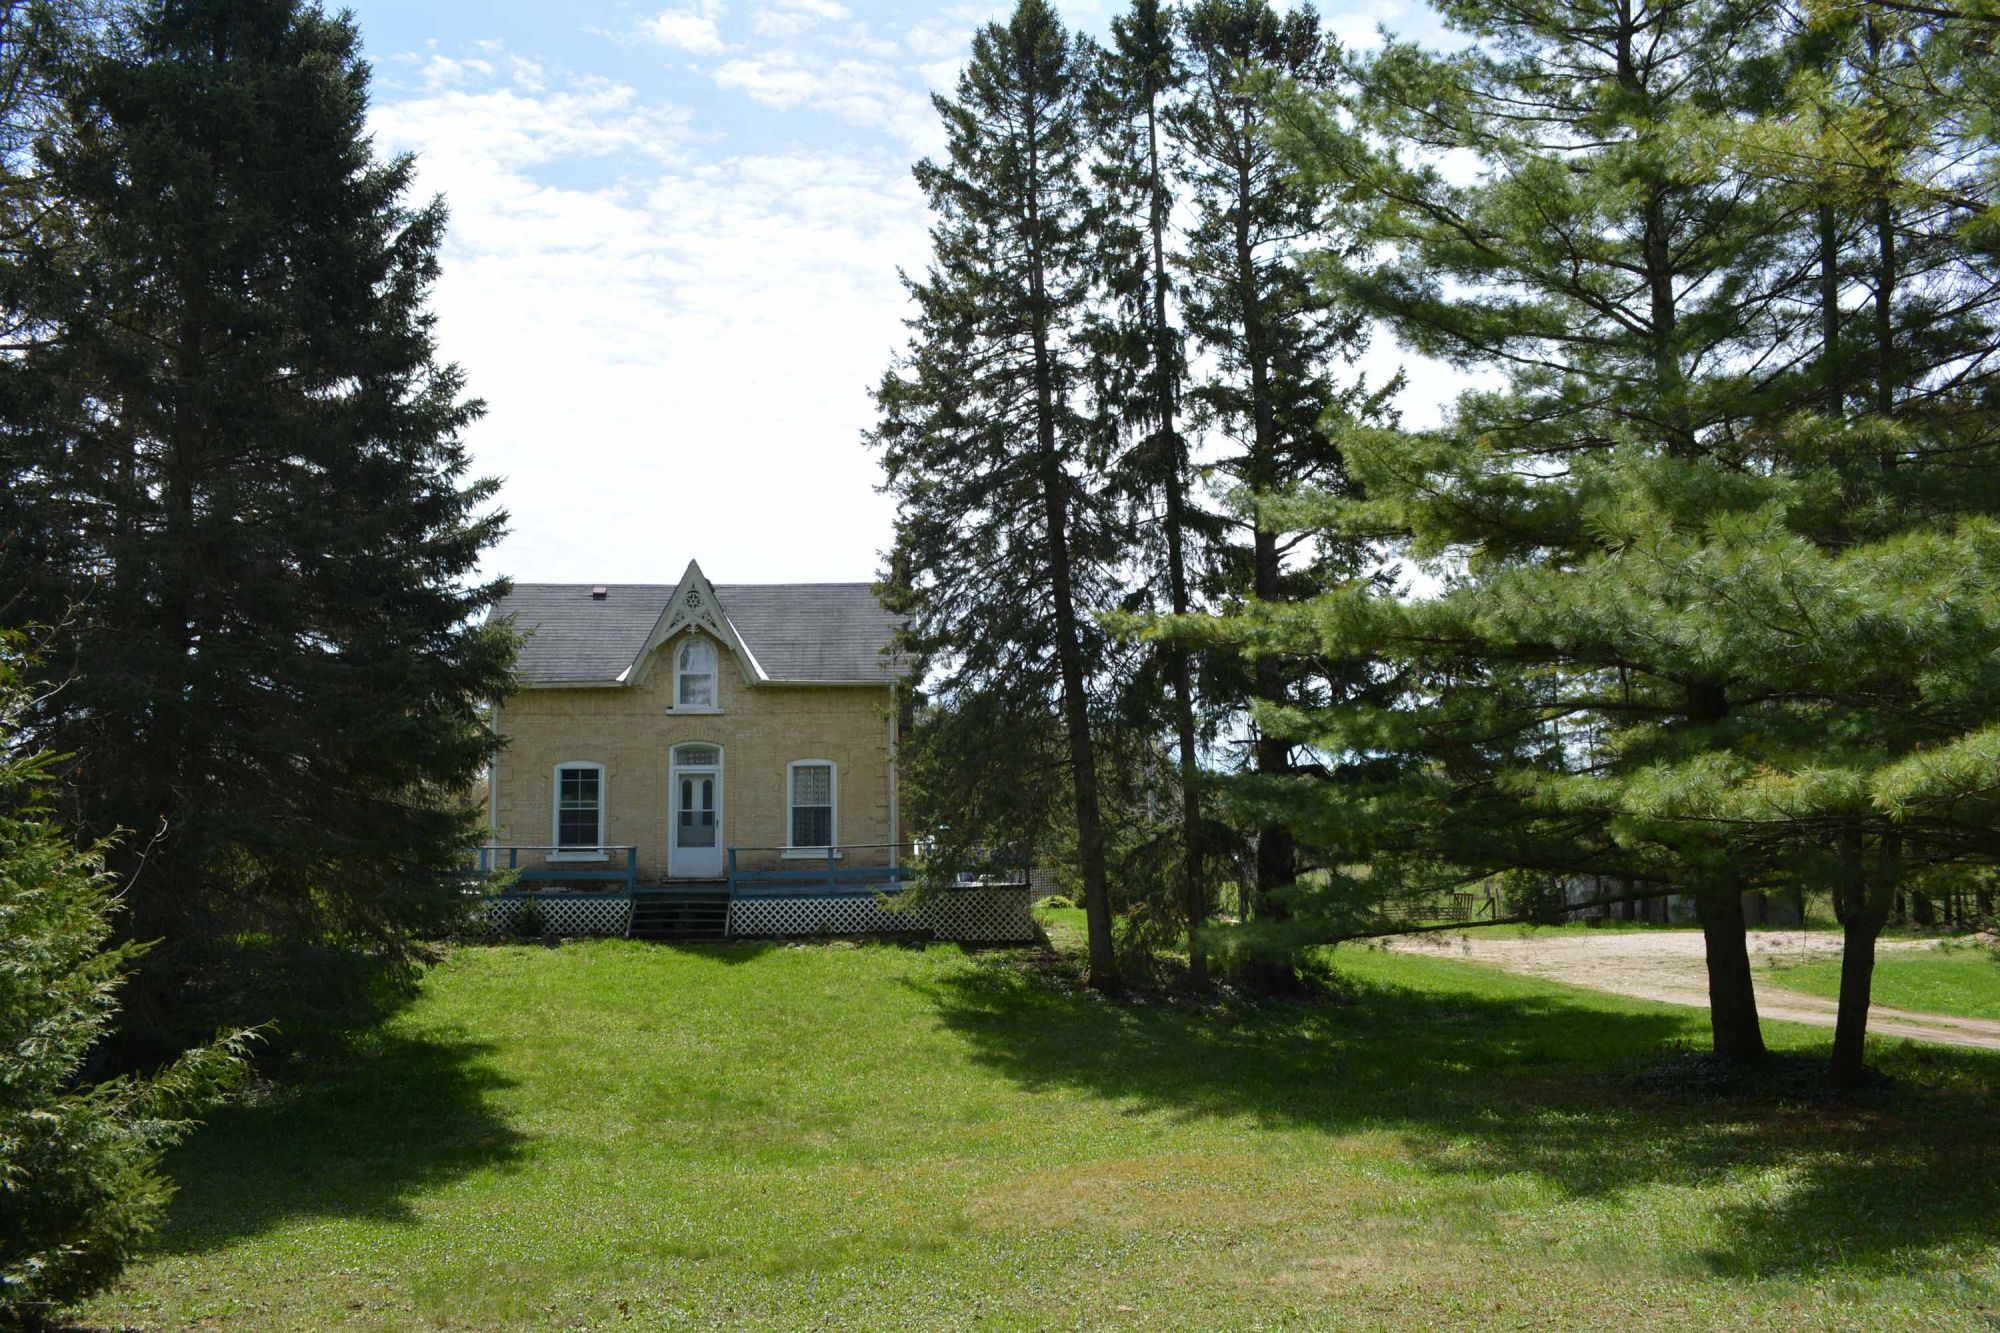 1904 Farmhouse on 13 acres